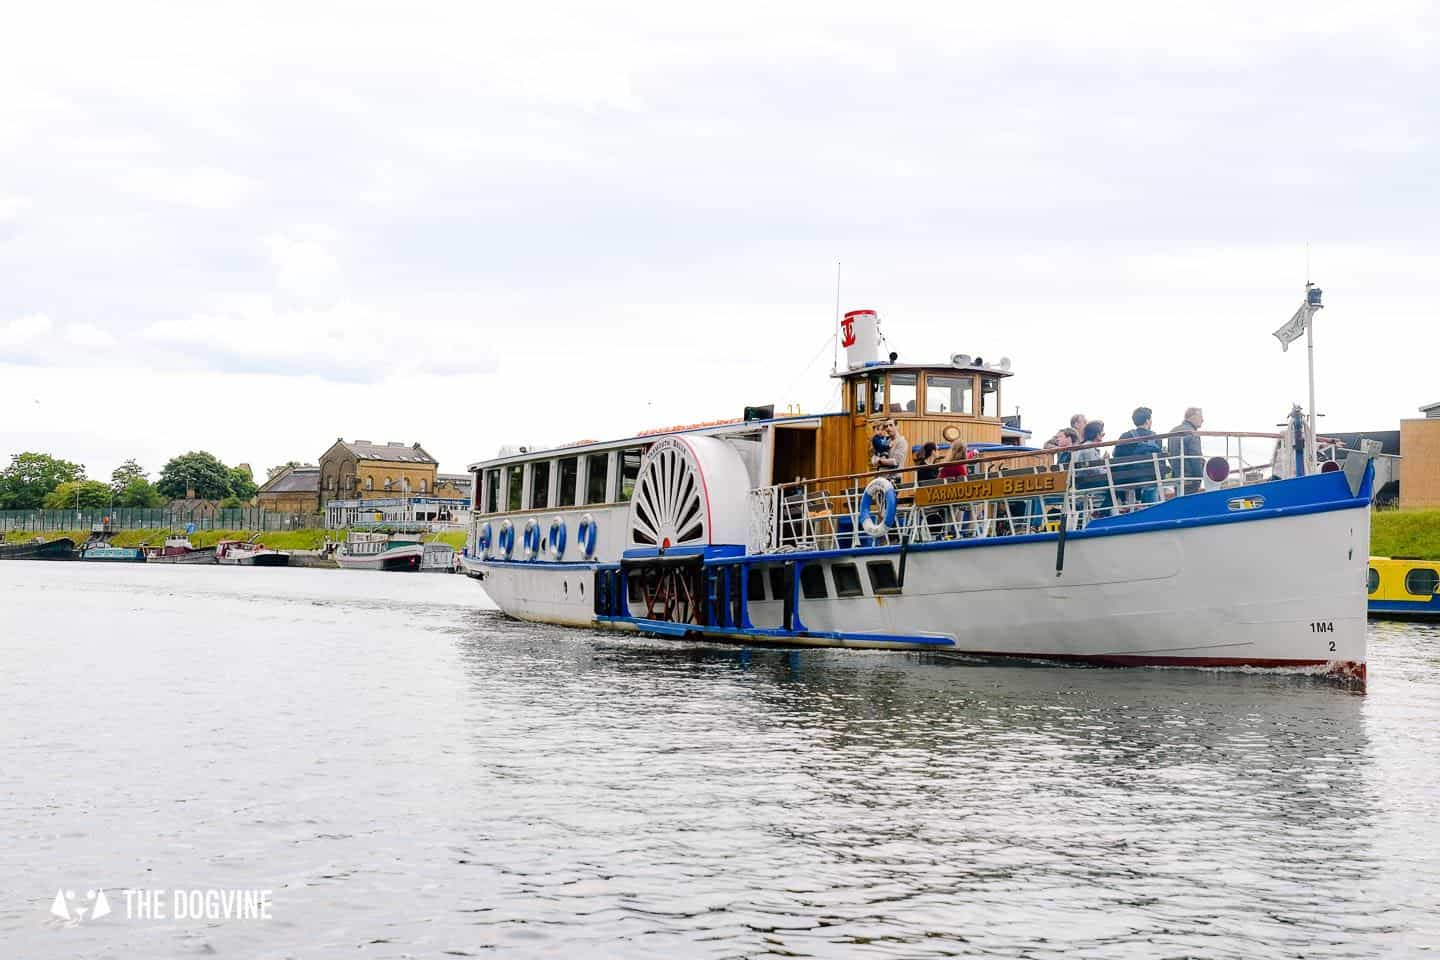 Dog-friendly Go Boat Kingston Upon Thames 2